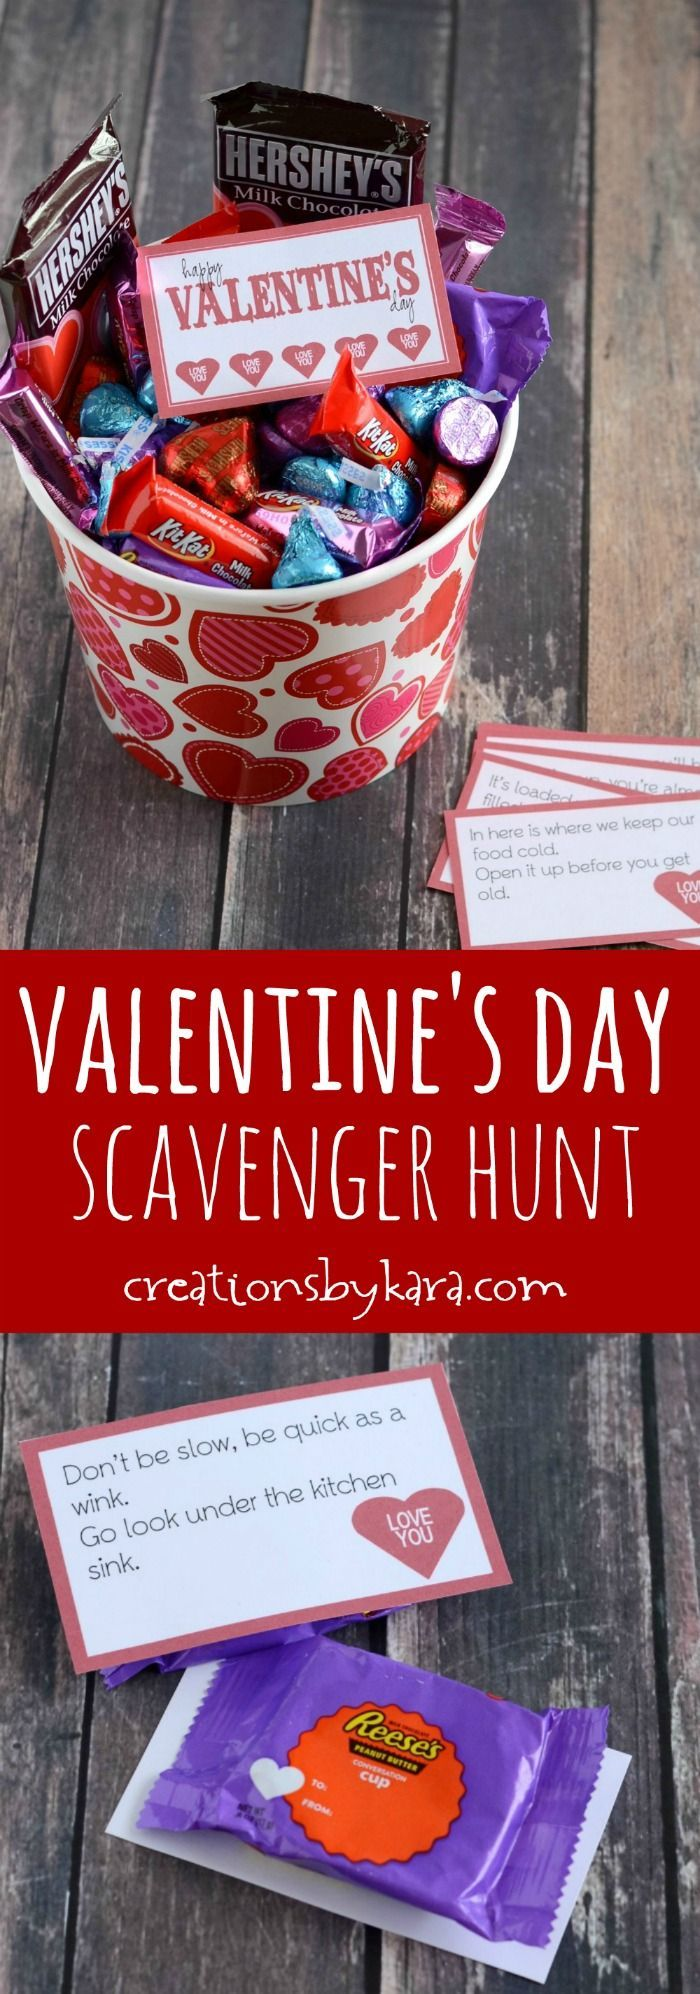 Best 25+ Mens Valentines Day Gifts Ideas On Pinterest | Diy Valentines Day  Gifts For Him, Valentines Day Gifts For Him And DIY Valentineu0027s Day Ideas  For ...